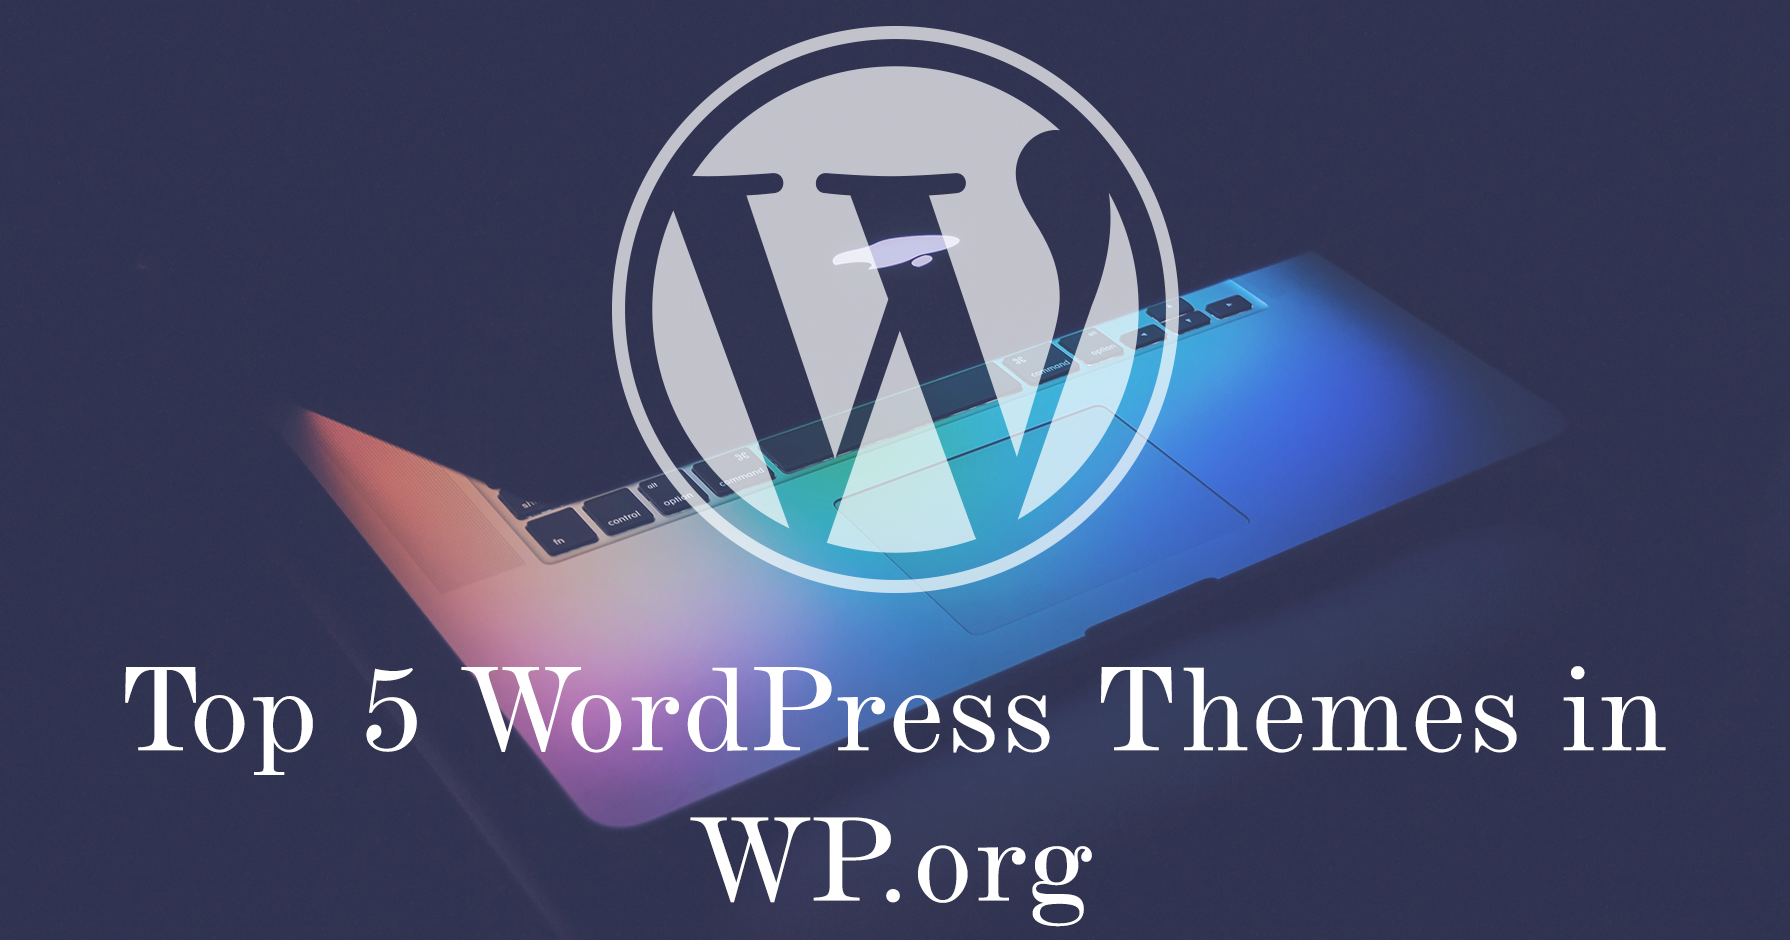 Top 5 WordPress themes in WordPress.org – June 2016 (Free)